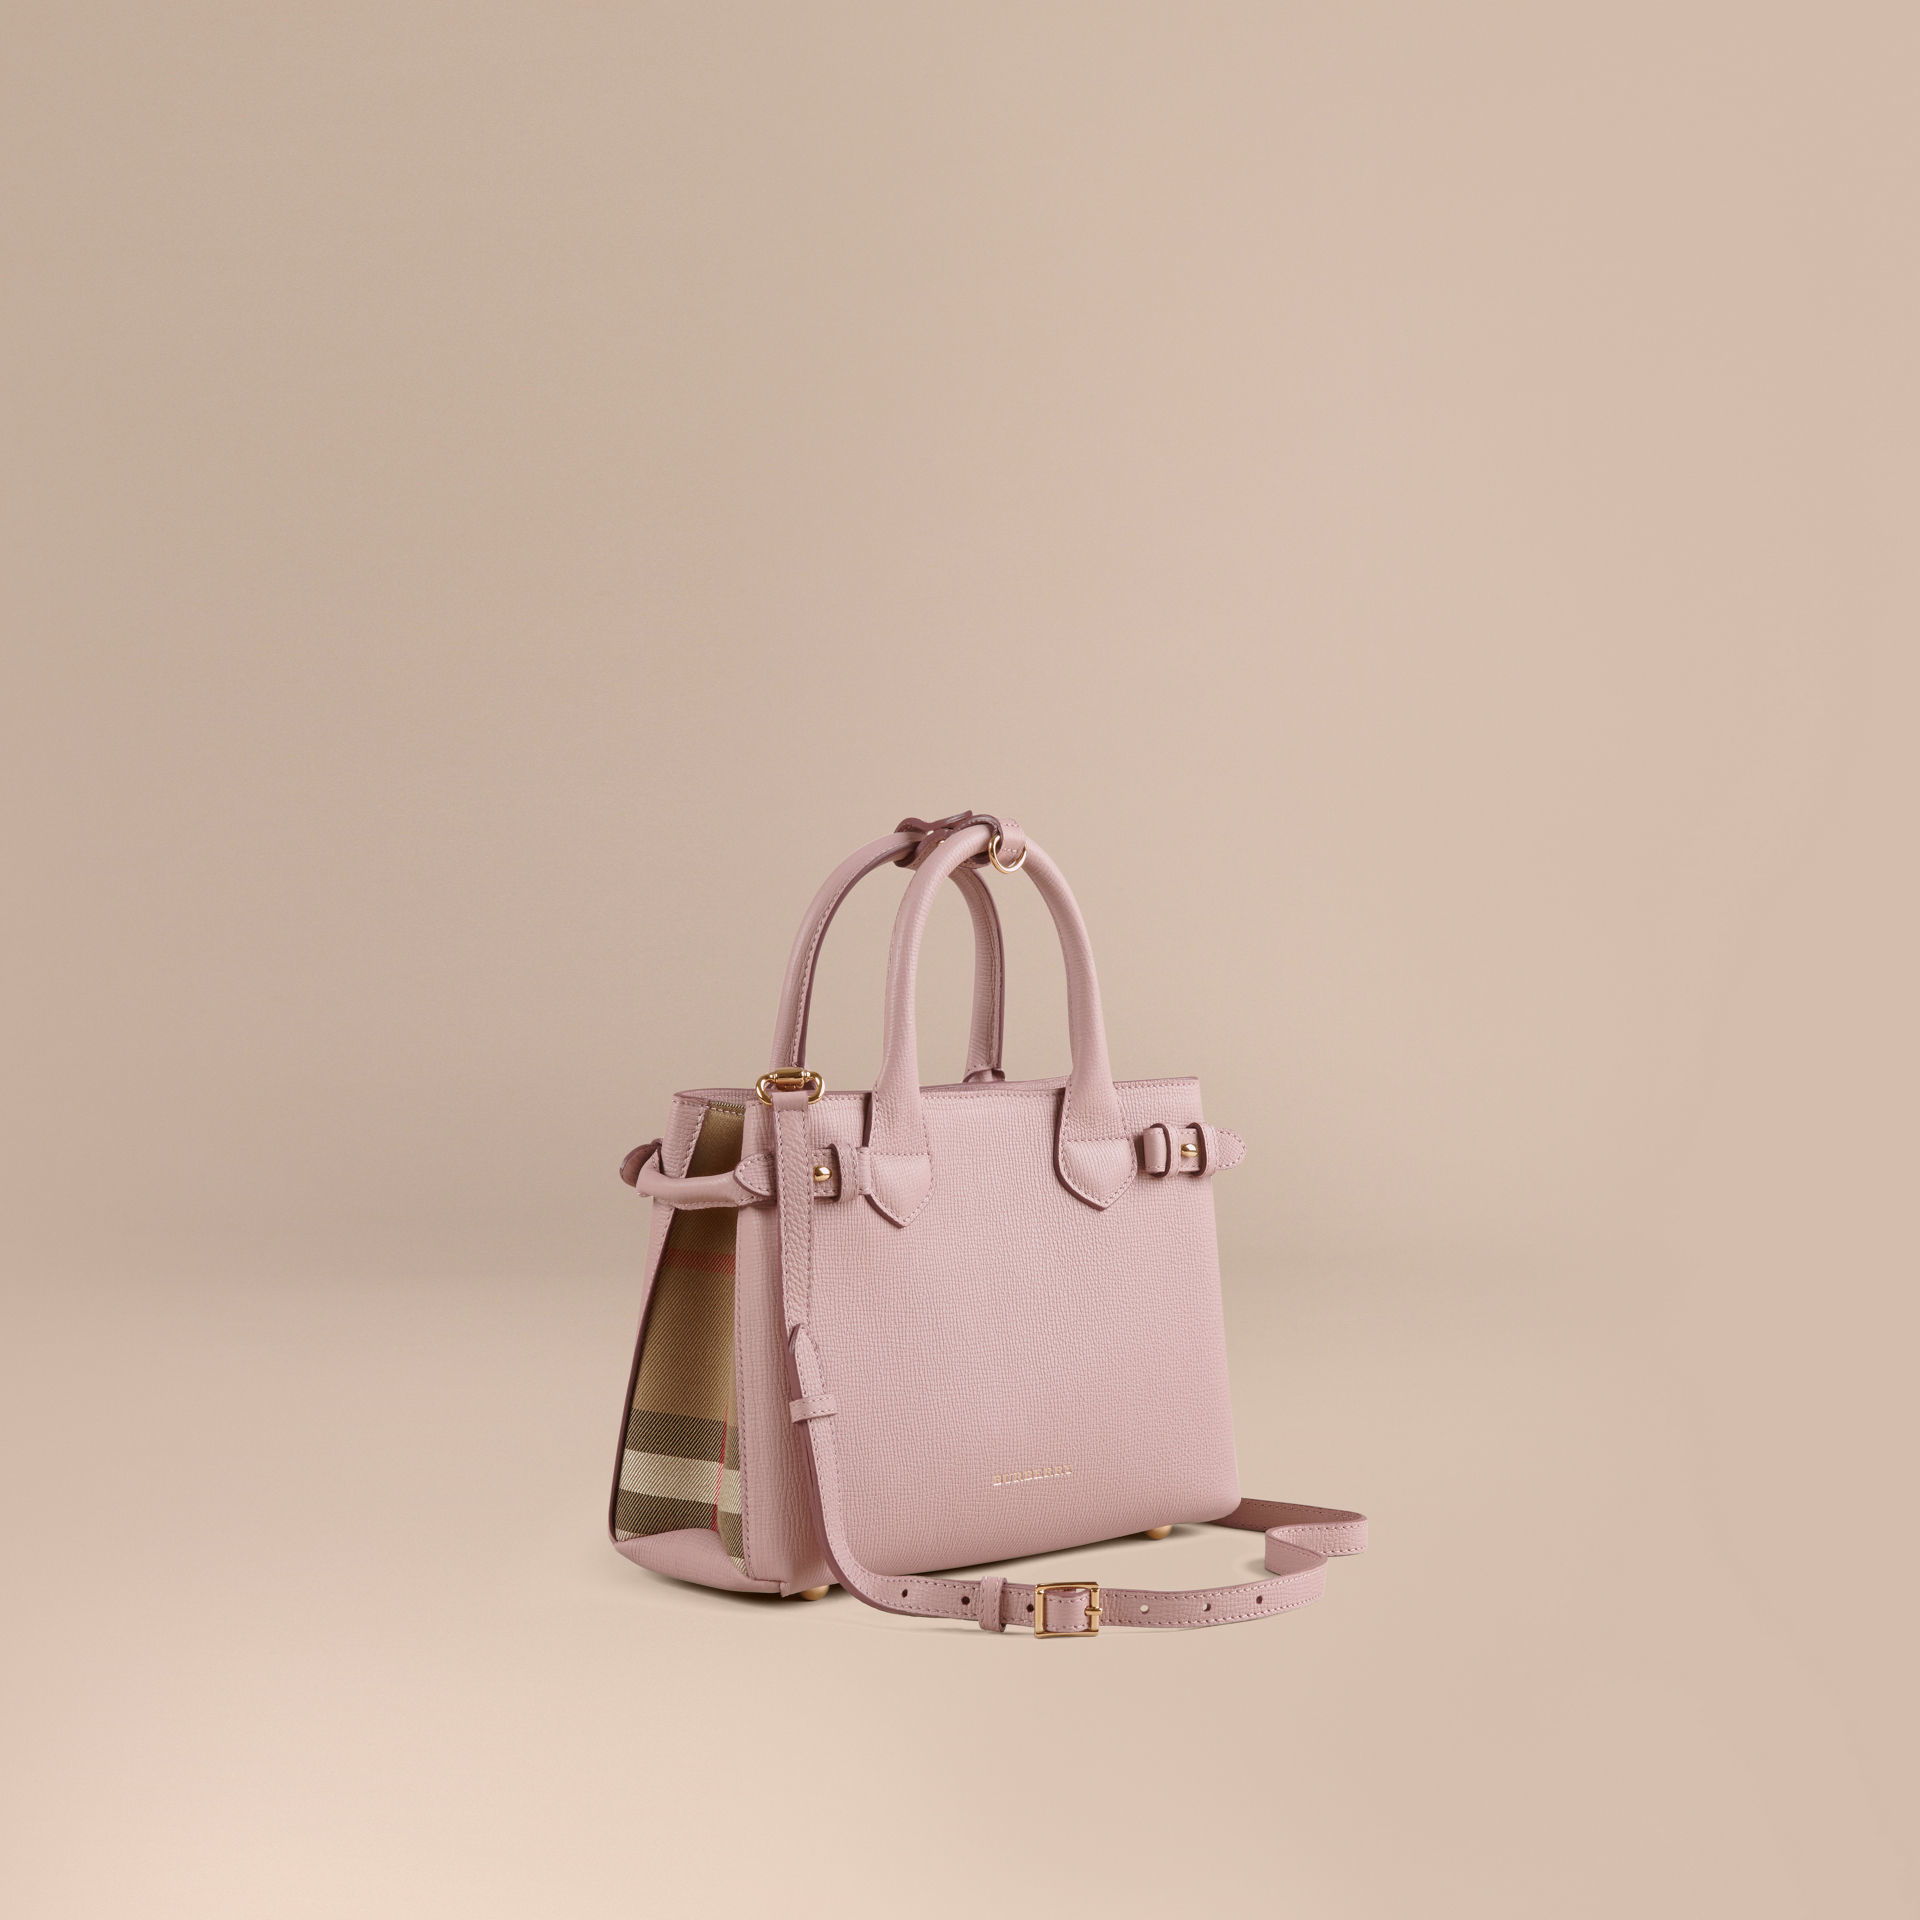 Burberry The Small Banner Leather And House Check Bag in Pink - Lyst ec592c5af8b53